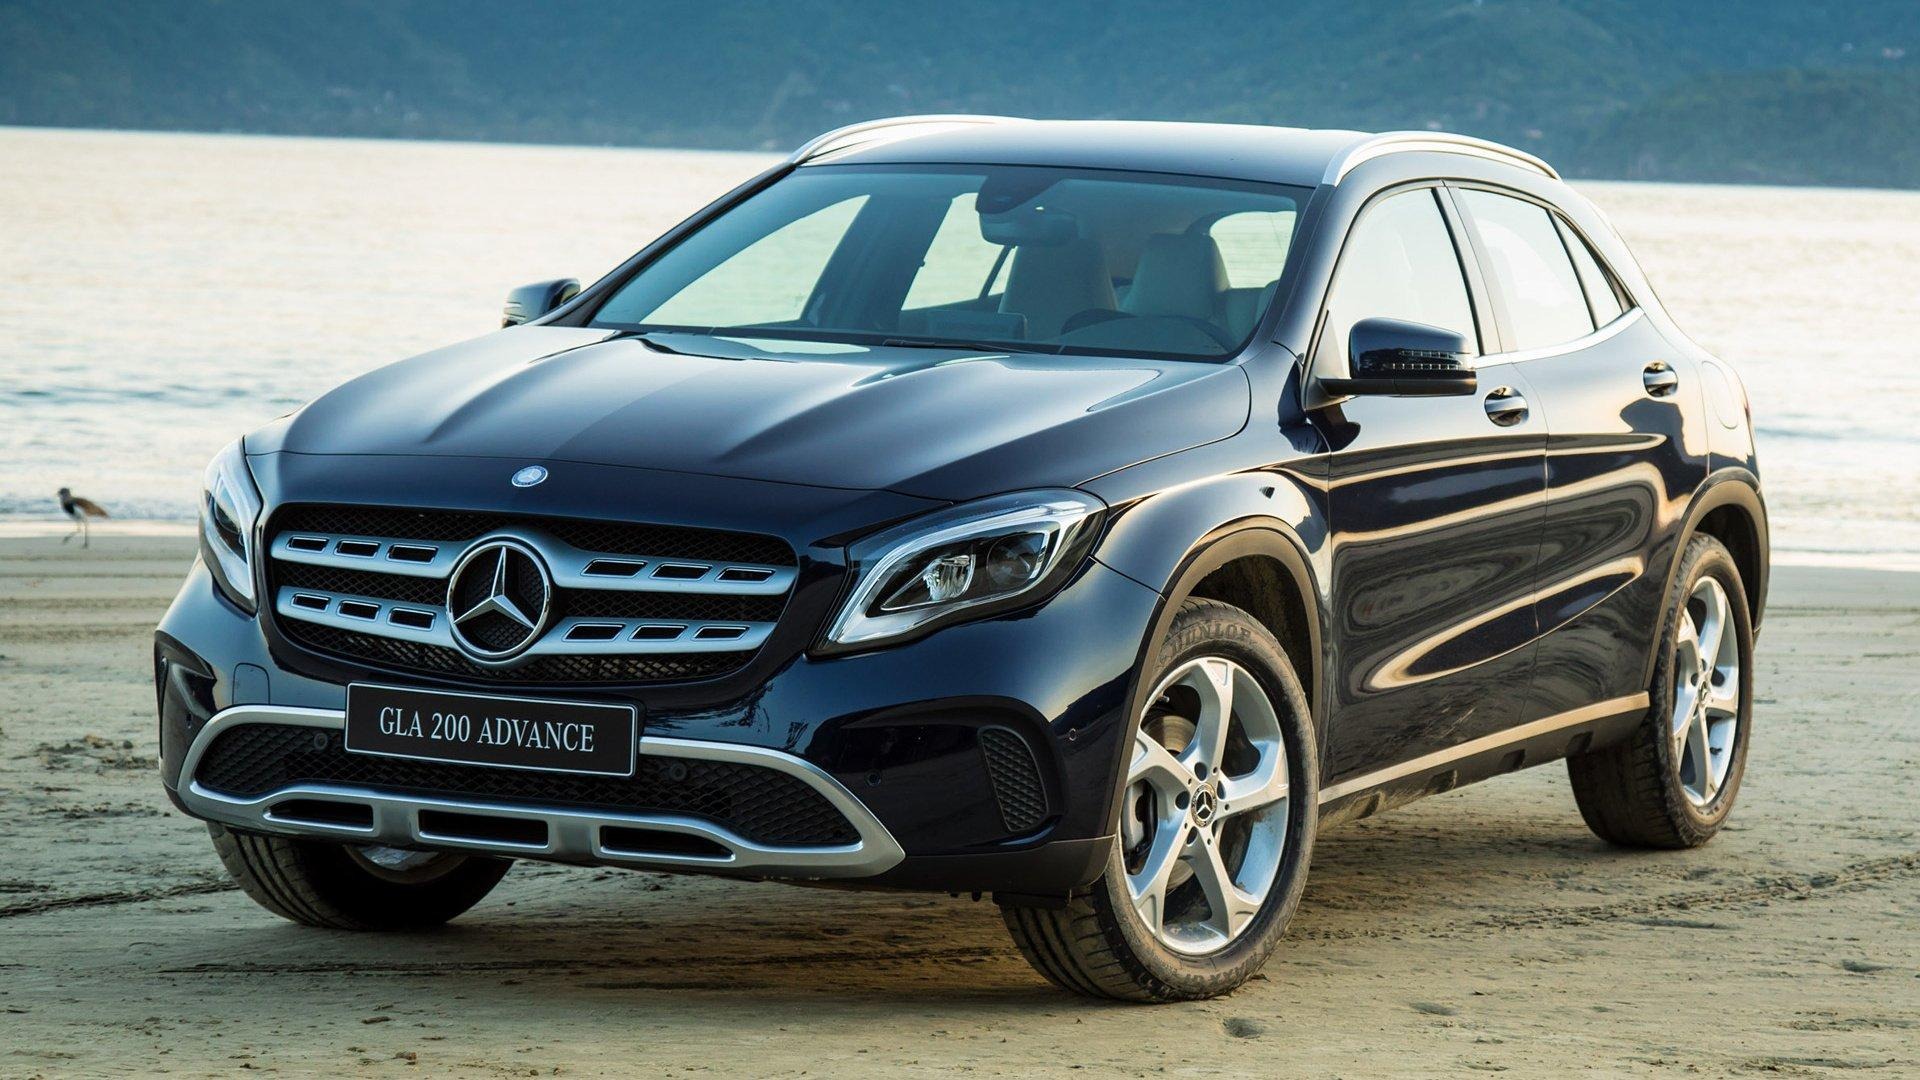 2017 Mercedes-Benz GLA-Class 200 Advance HD Wallpaper | Background ...